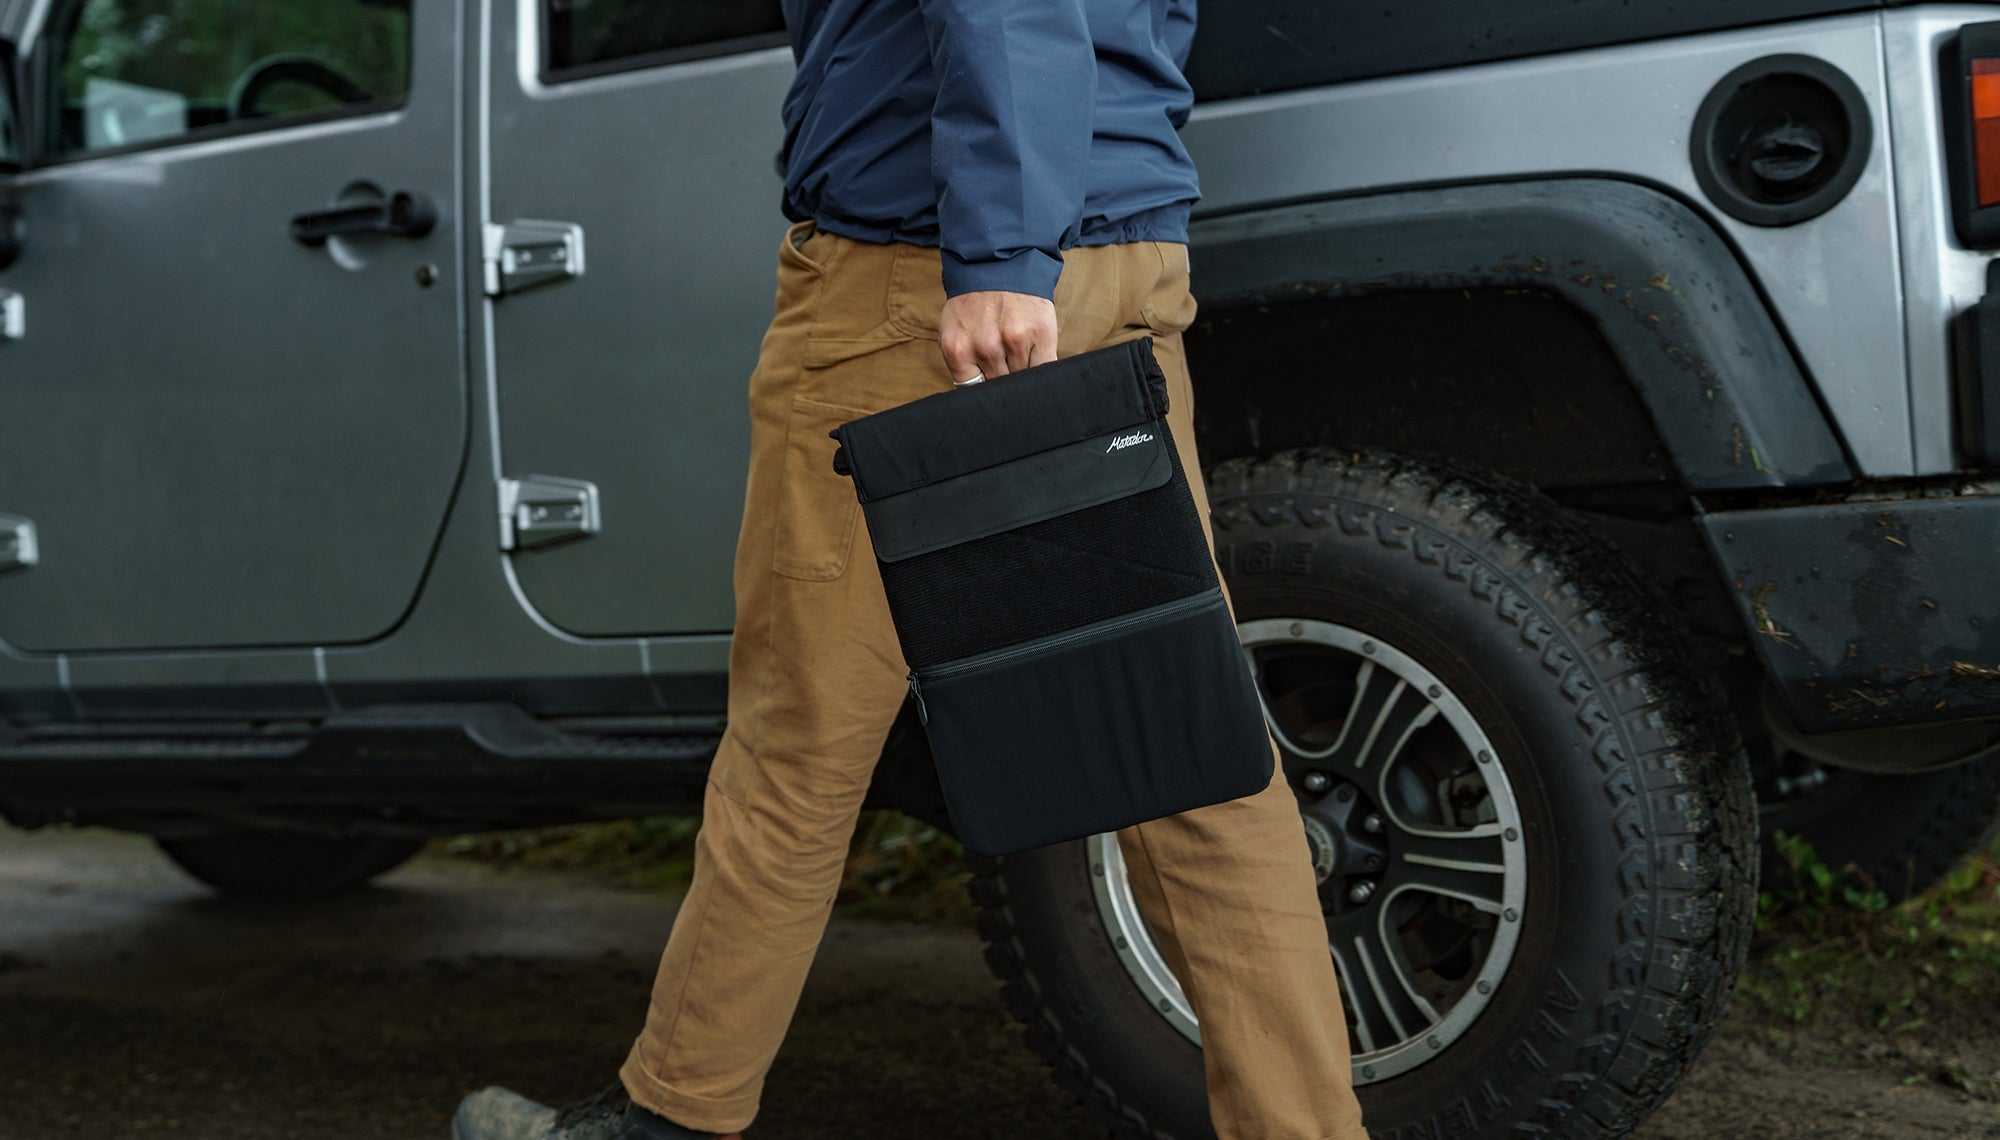 Man walking outside holding laptop base layer by carry handle